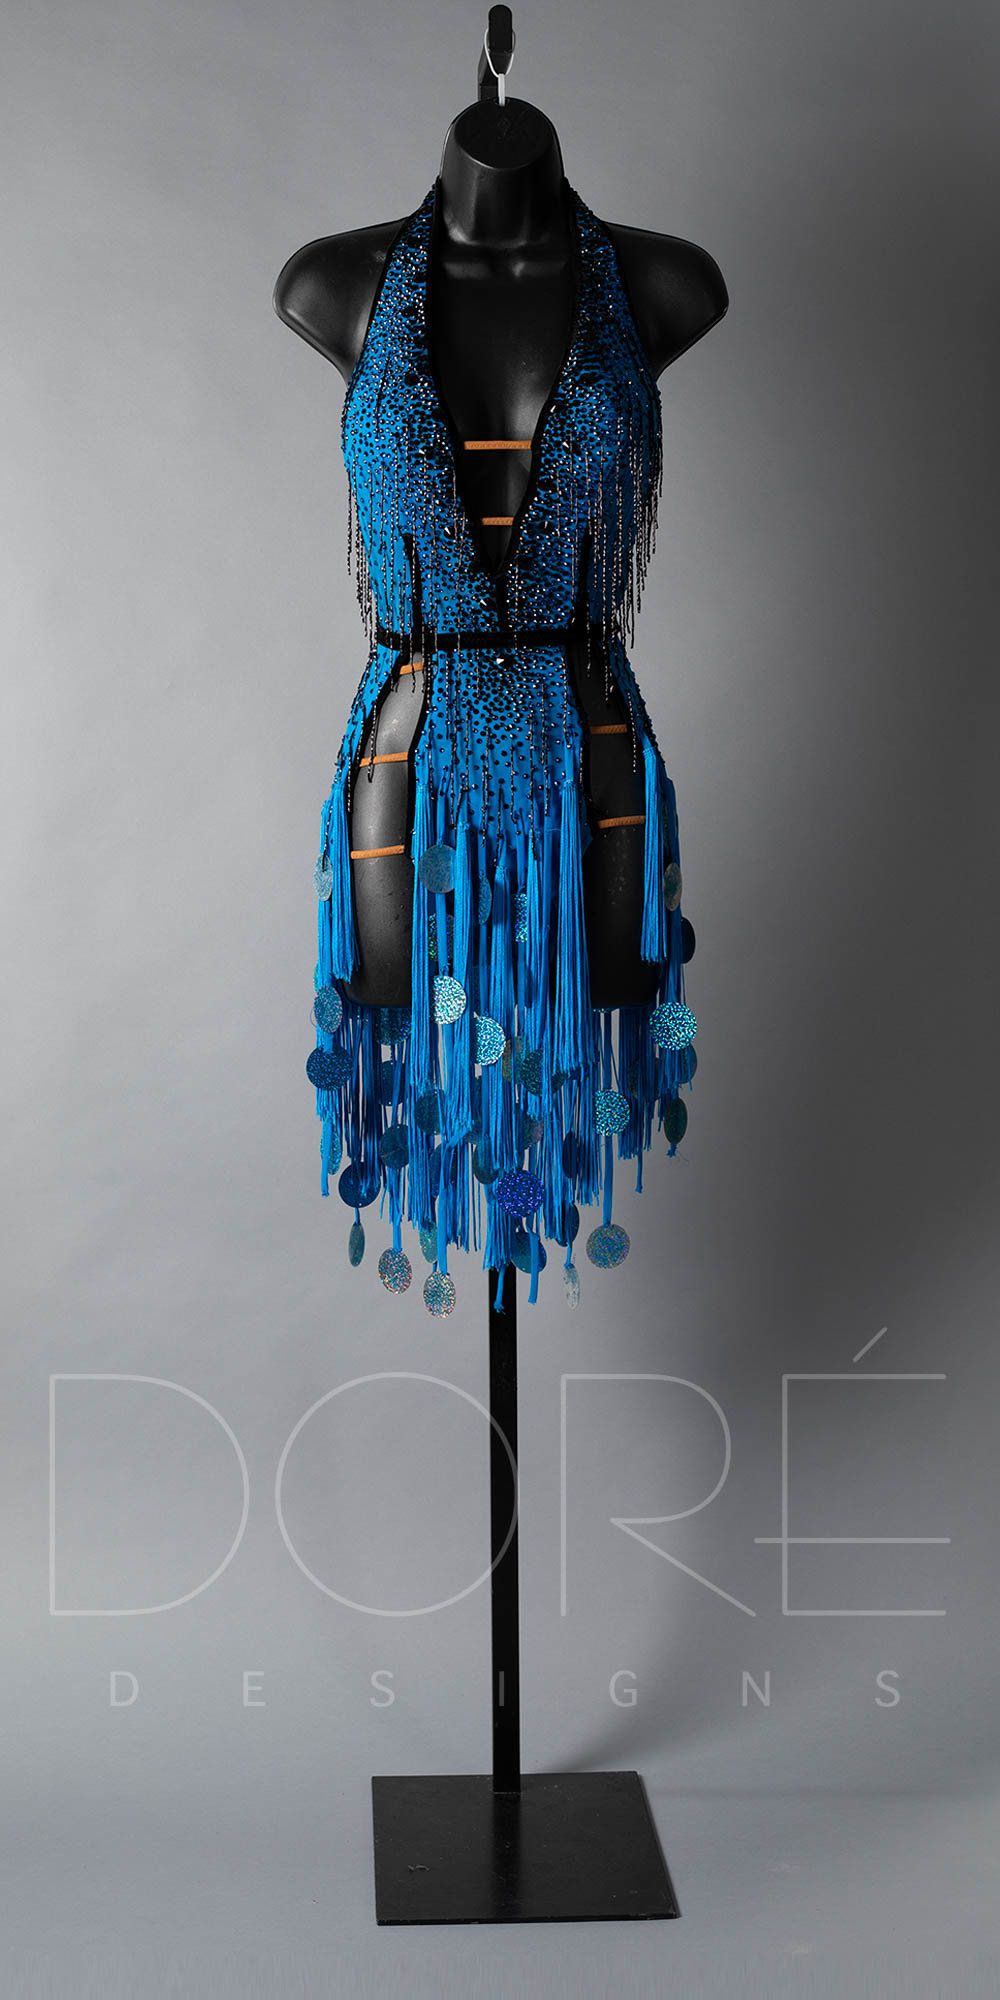 Electric blue rhythm with black velvet accents, black bf, and e blue fabric fringe with pailettes